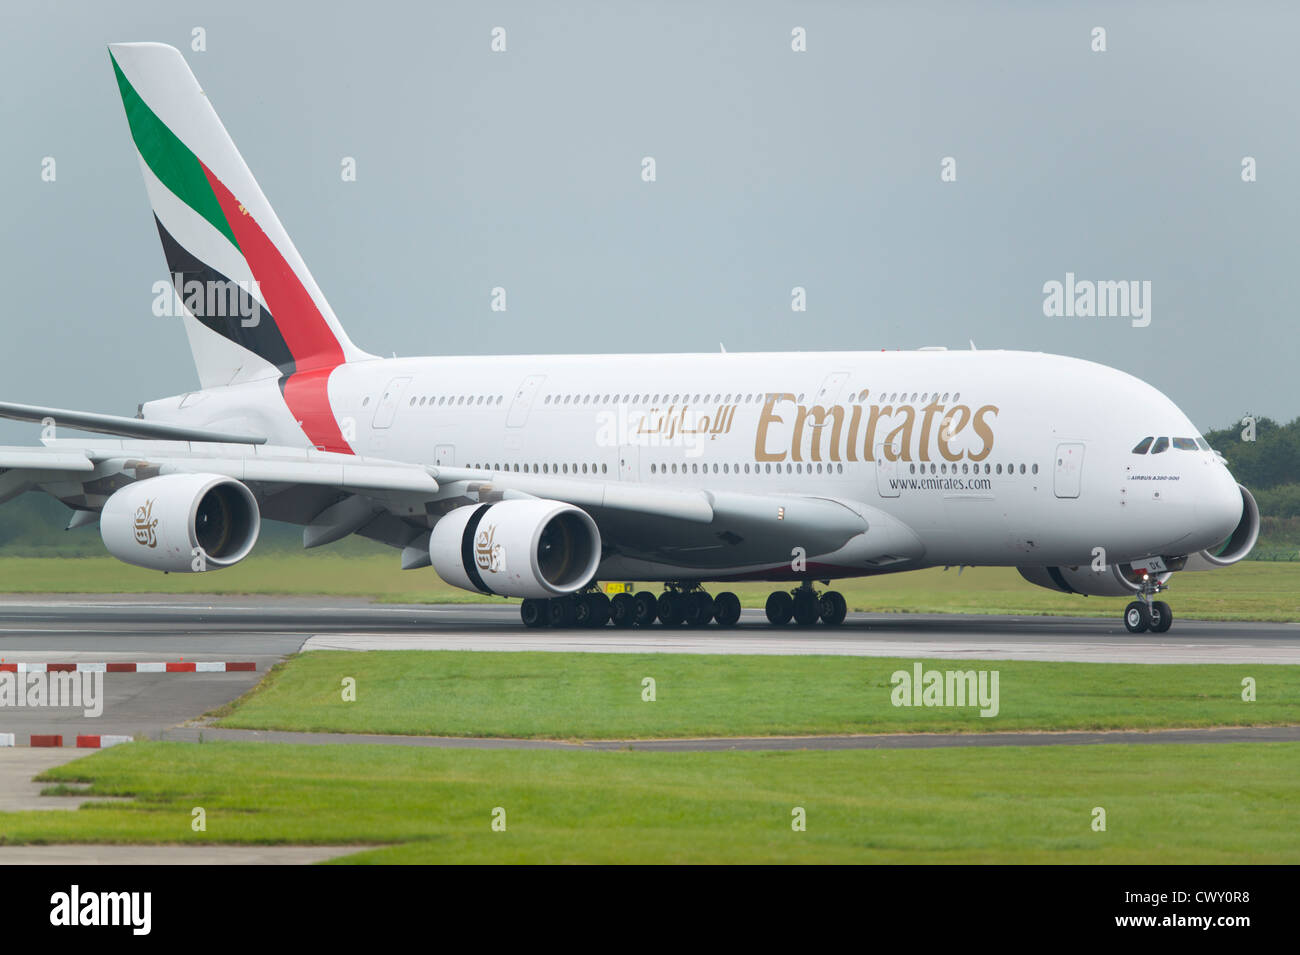 A Emirates Airbus A380 taxiing on the runway of Manchester International Airport (Editorial use only) - Stock Image